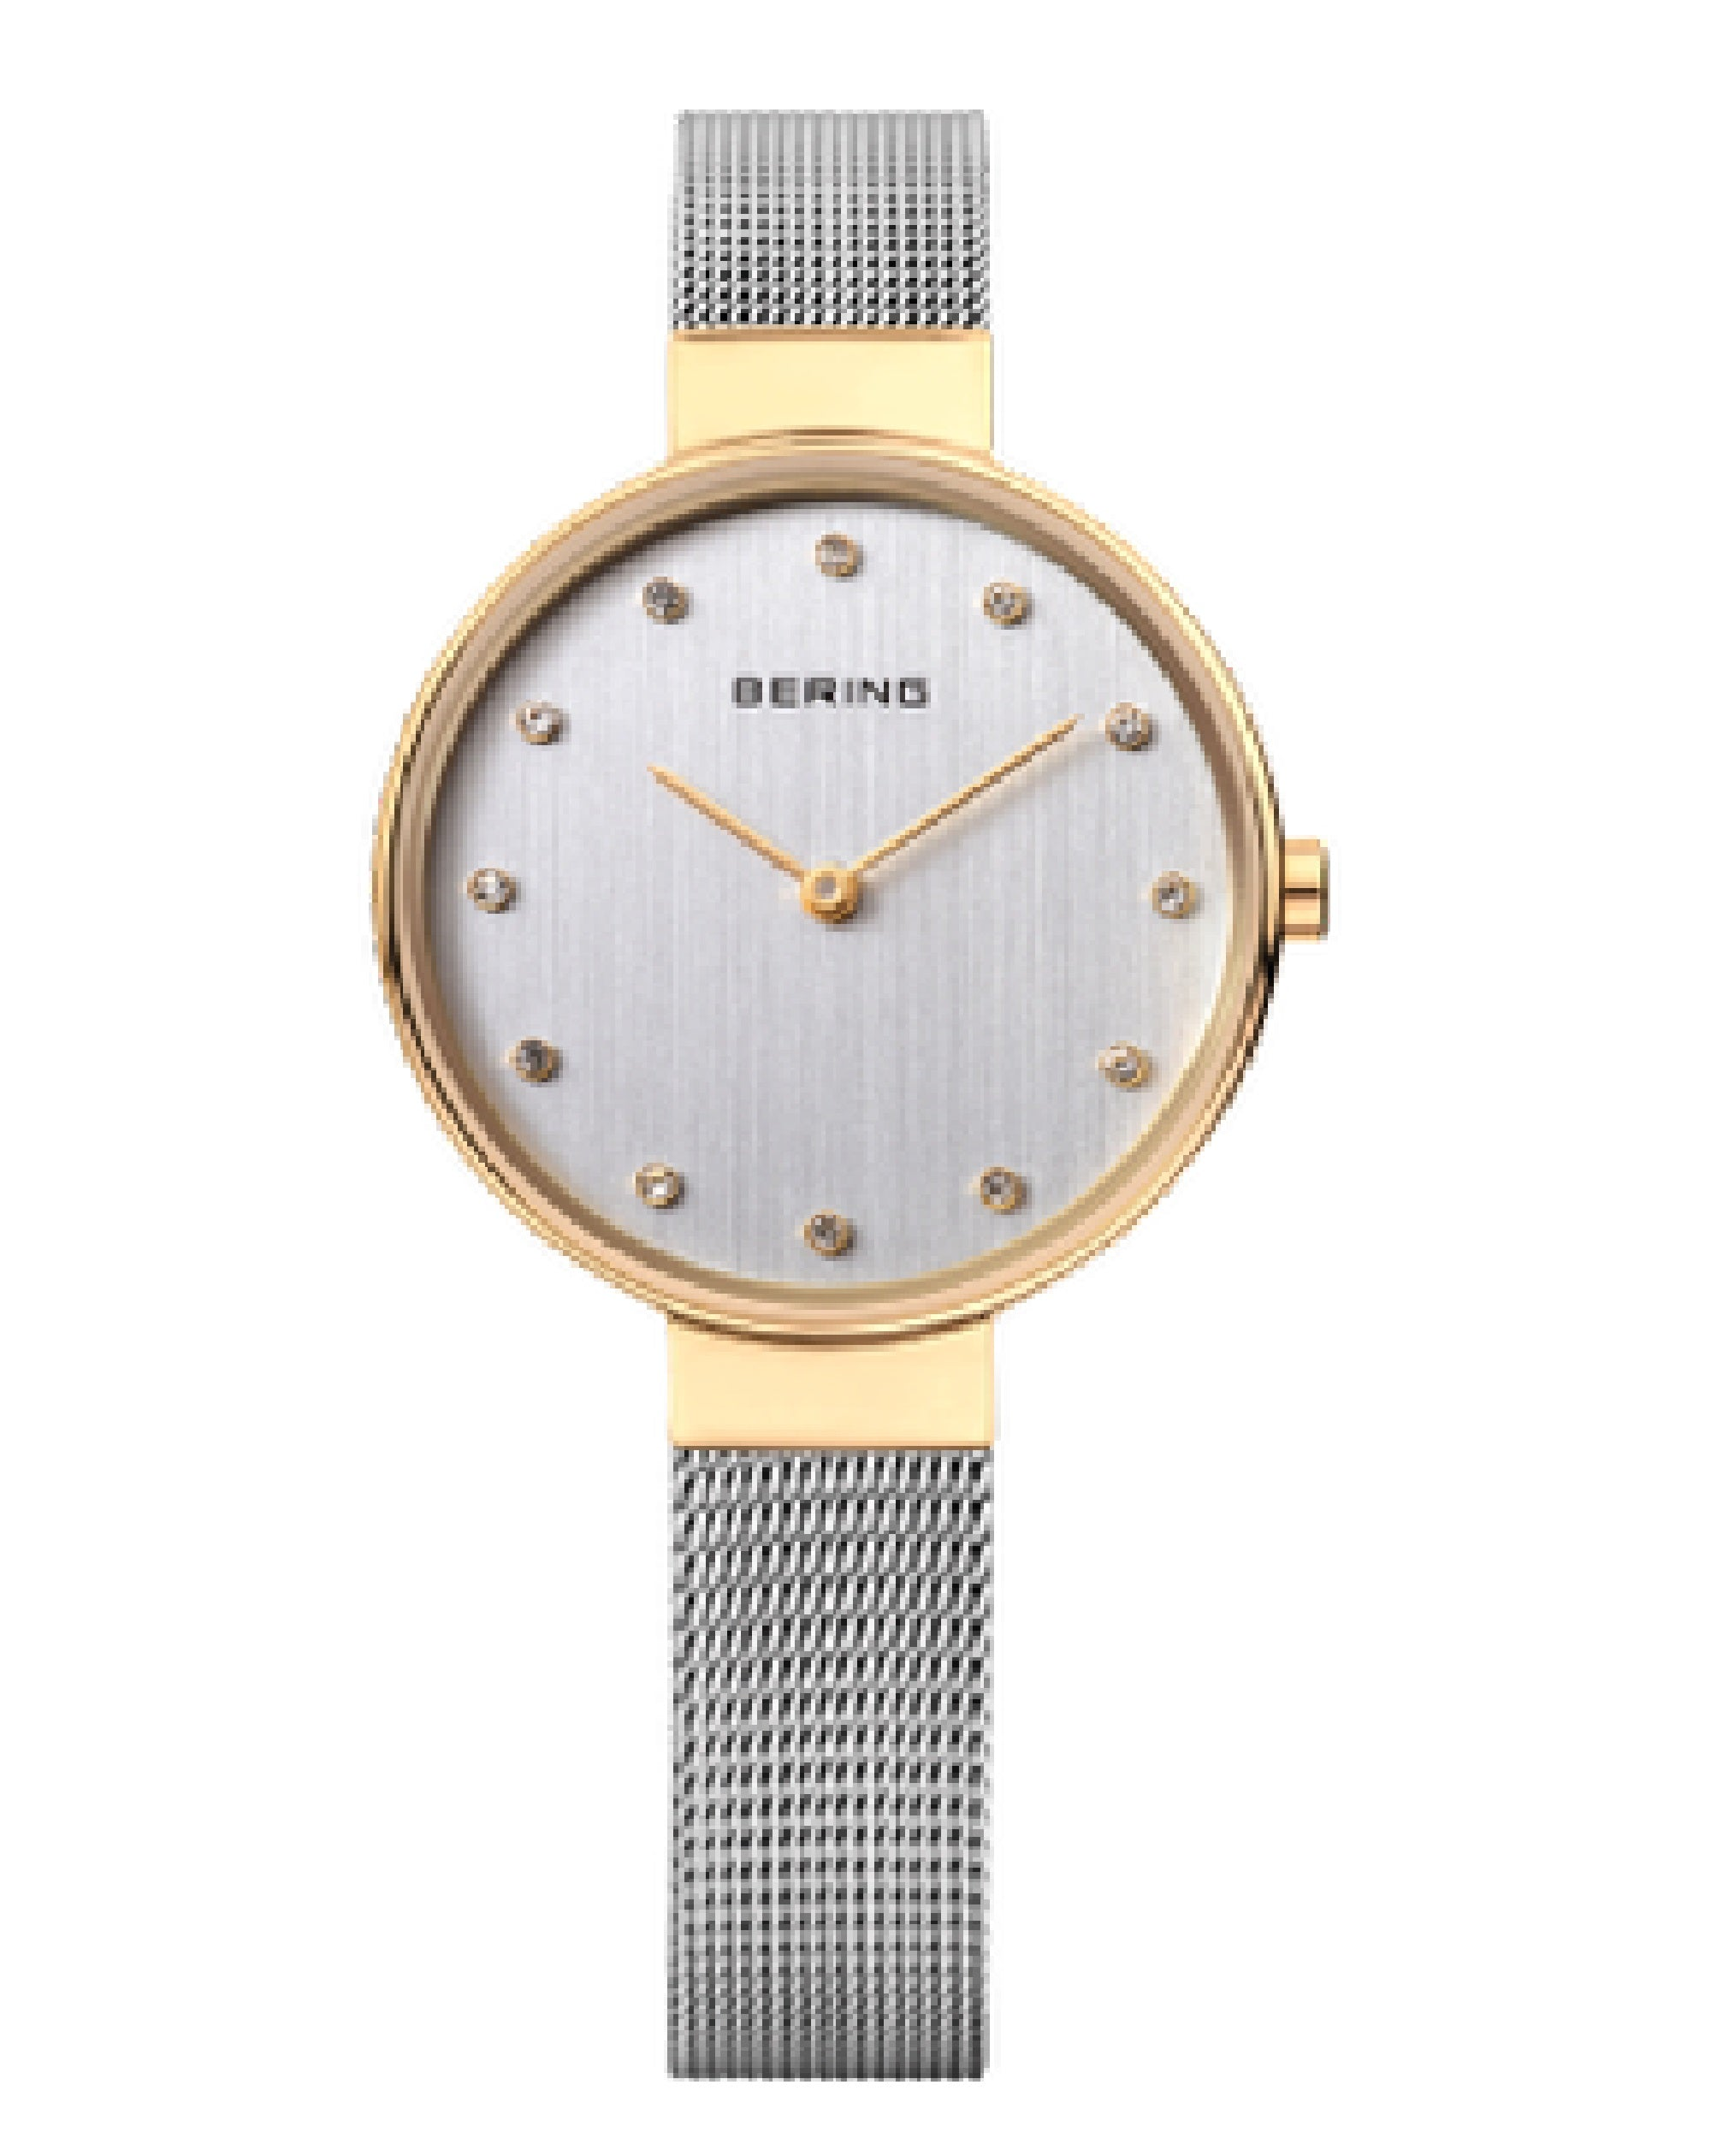 12034-010 Bering Classic Collection Quartz Watch